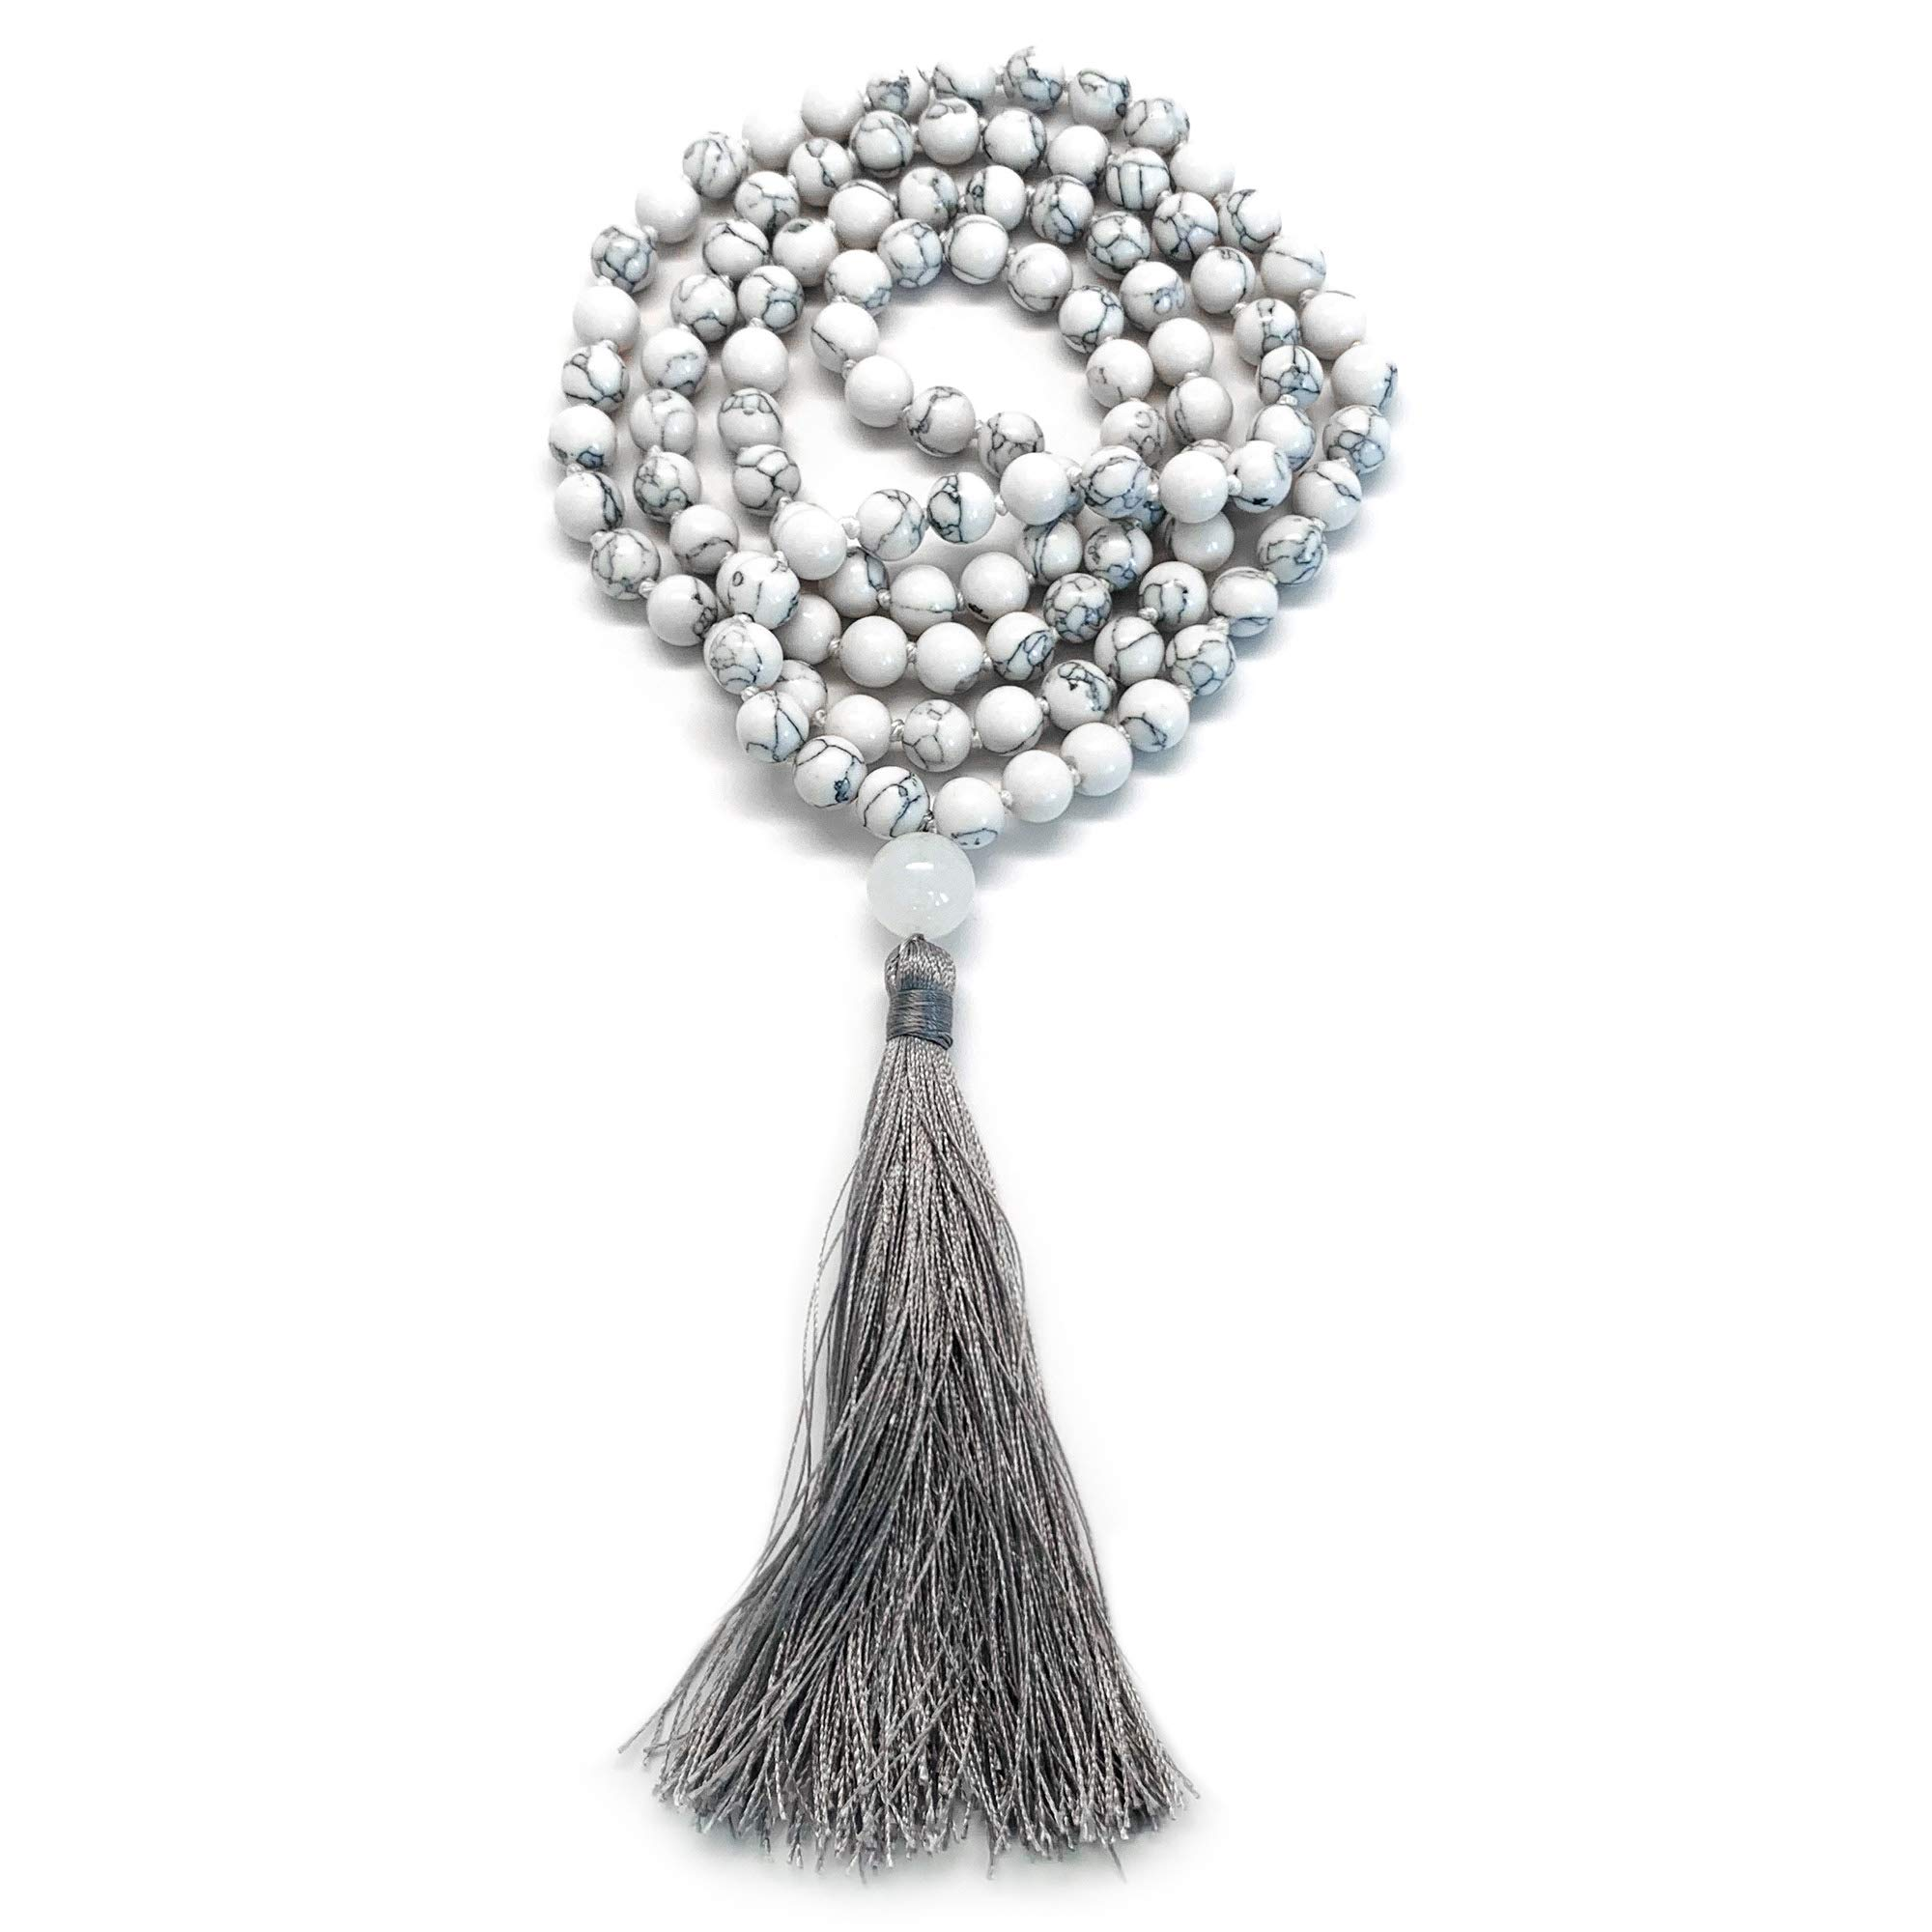 108 Bead Mala Necklace & Bracelet With Tassel By Aspen & Eve - 8mm Stone Beads - Strand 108 Beads Necklace For Mindfulness & Yoga (White Howlite) by Aspen & Eve